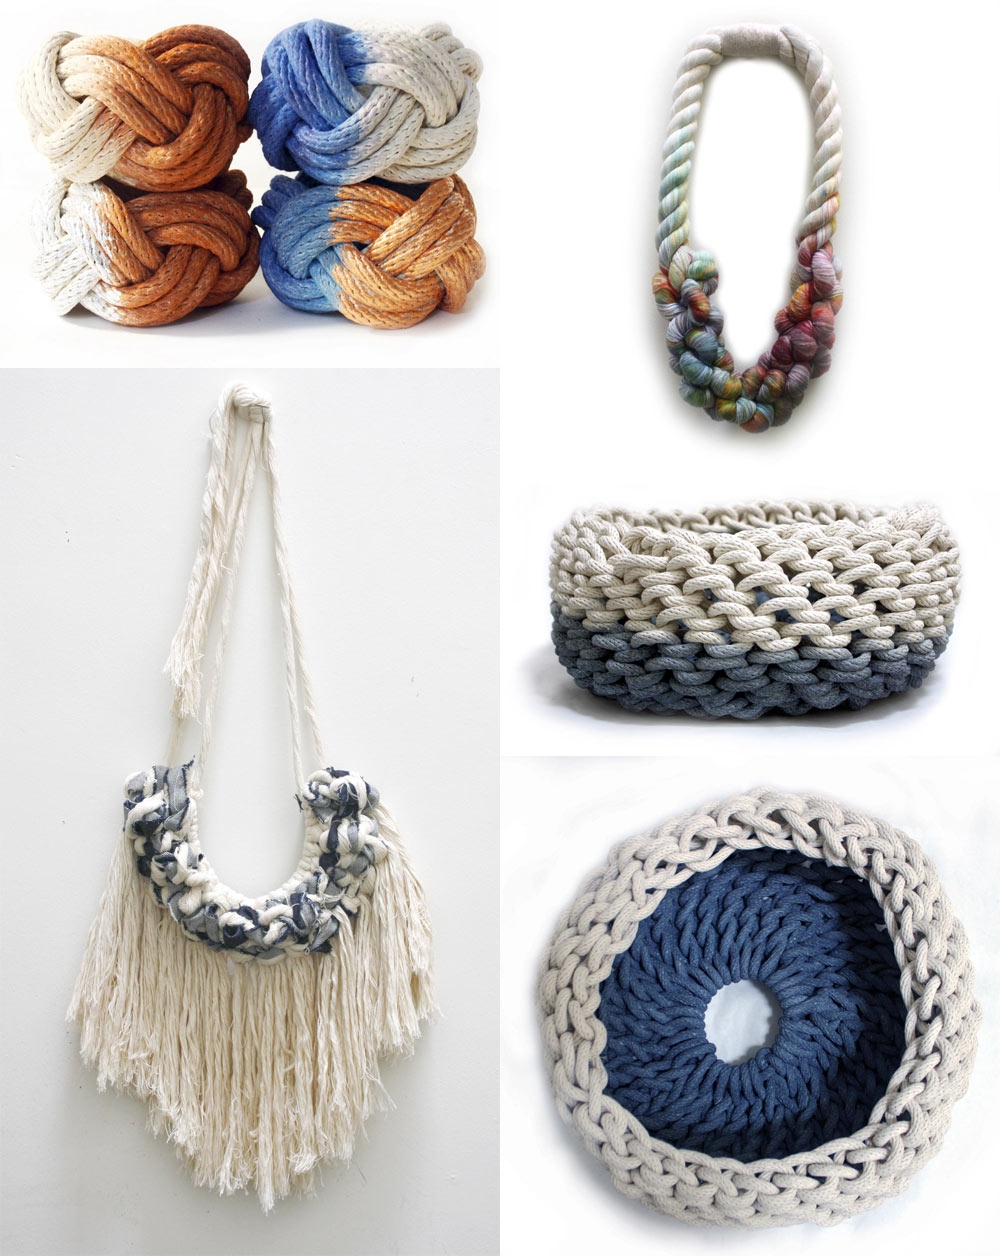 Tanya's rope jewelry, wall hangings and fiber housewares